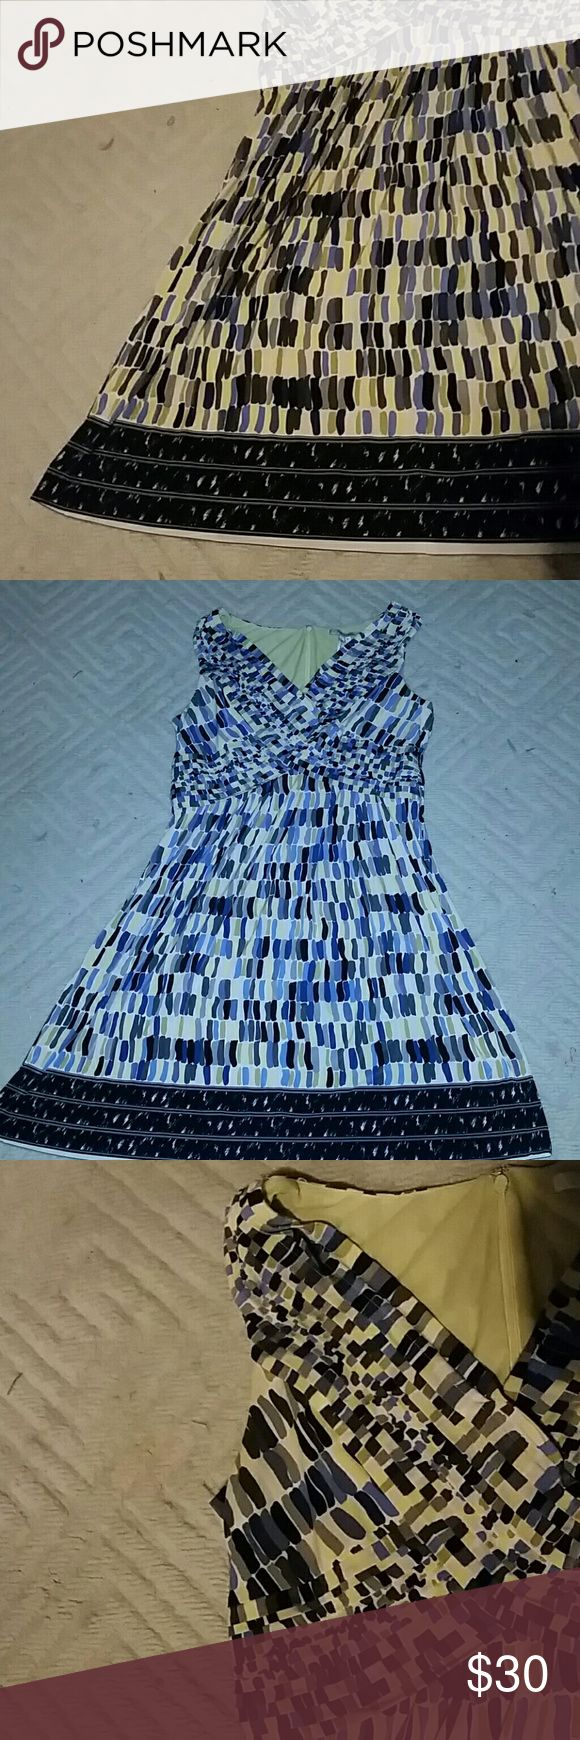 Max and cleo summer dress Blue yellow gray and black vneck flowy summer dress. G…